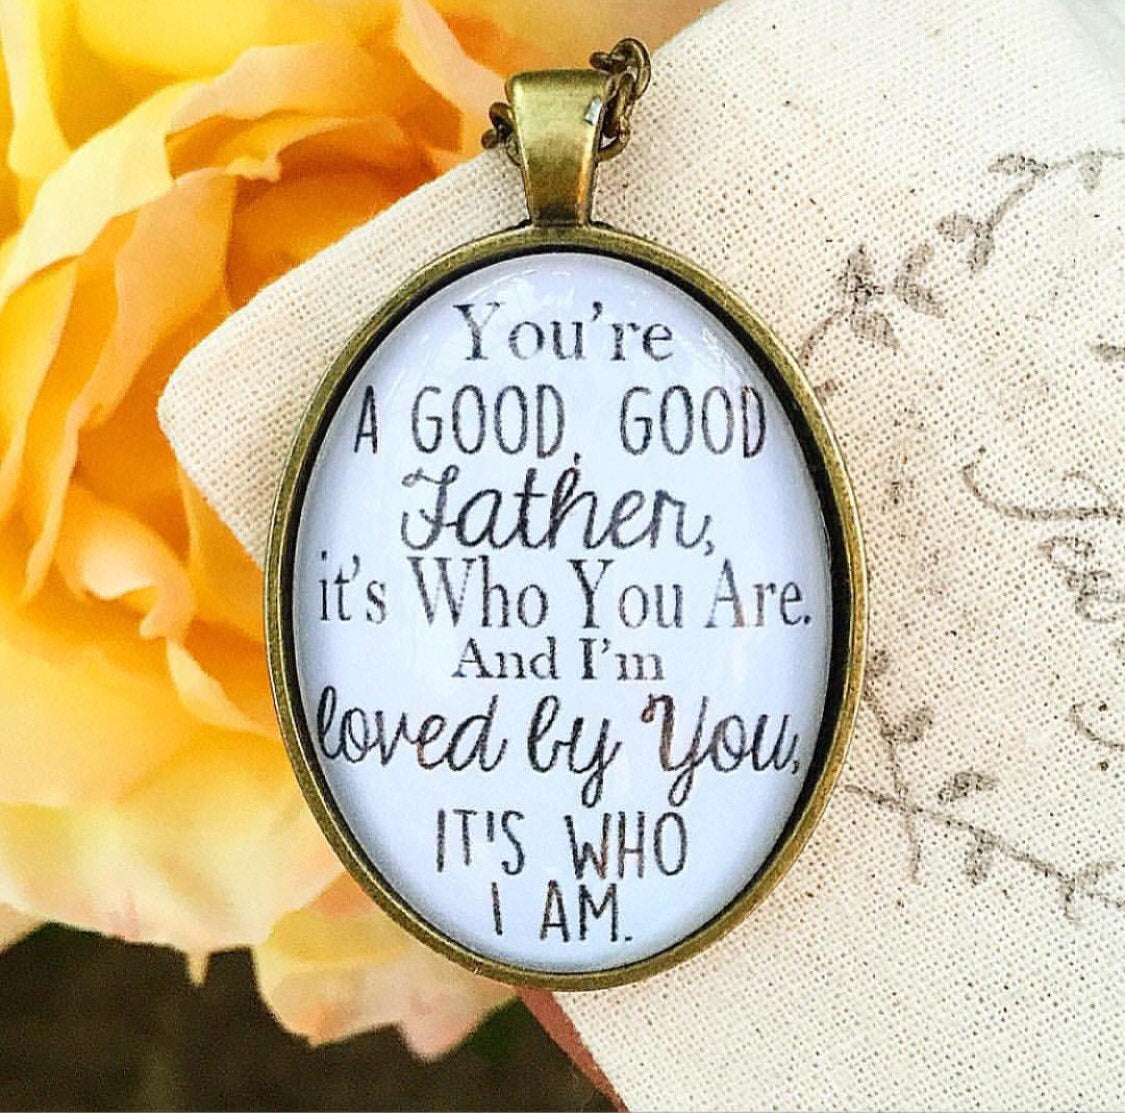 Good Good Father Pendant Necklace - Redeemed Jewelry